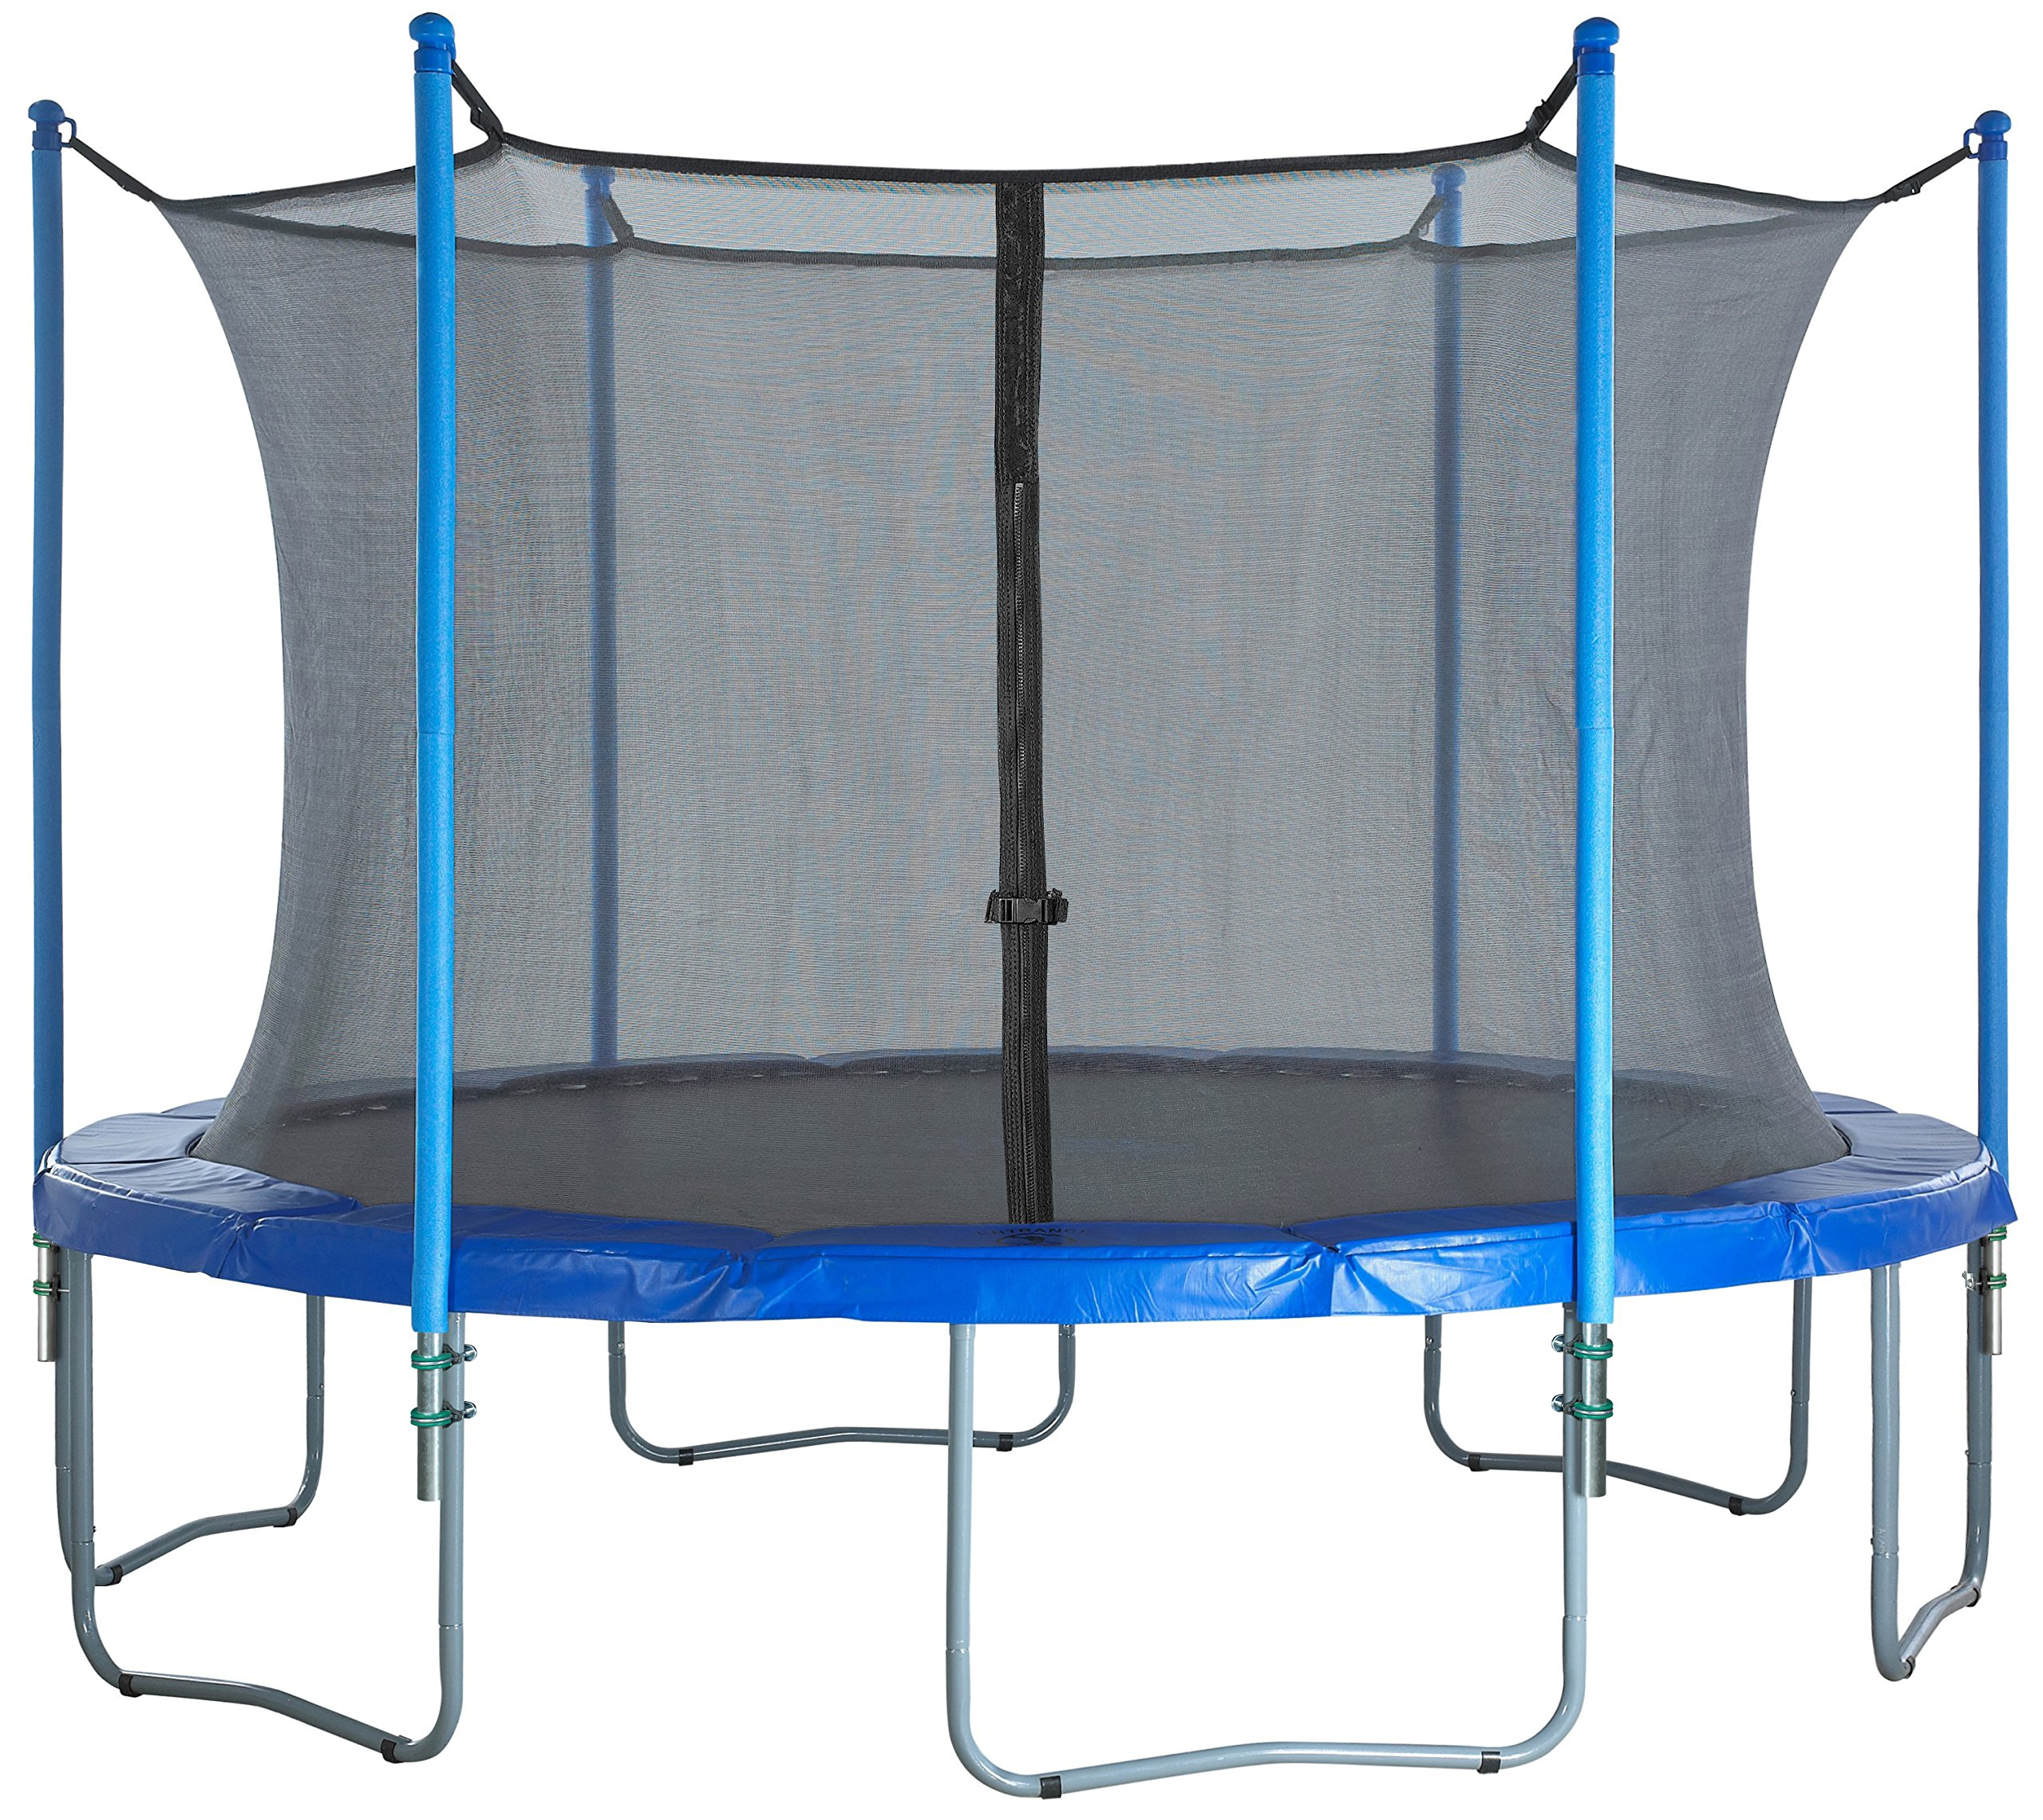 Trampoline Enclosure Set for round 15-Ft | Trampoline net replacement | Trampoline net with poles | Replacement trampoline parts | Outdoor trampoline replacement net for trampoline nets |fits 3 & 6 W-Shaped Legs by Upper Bounce (Image #7)